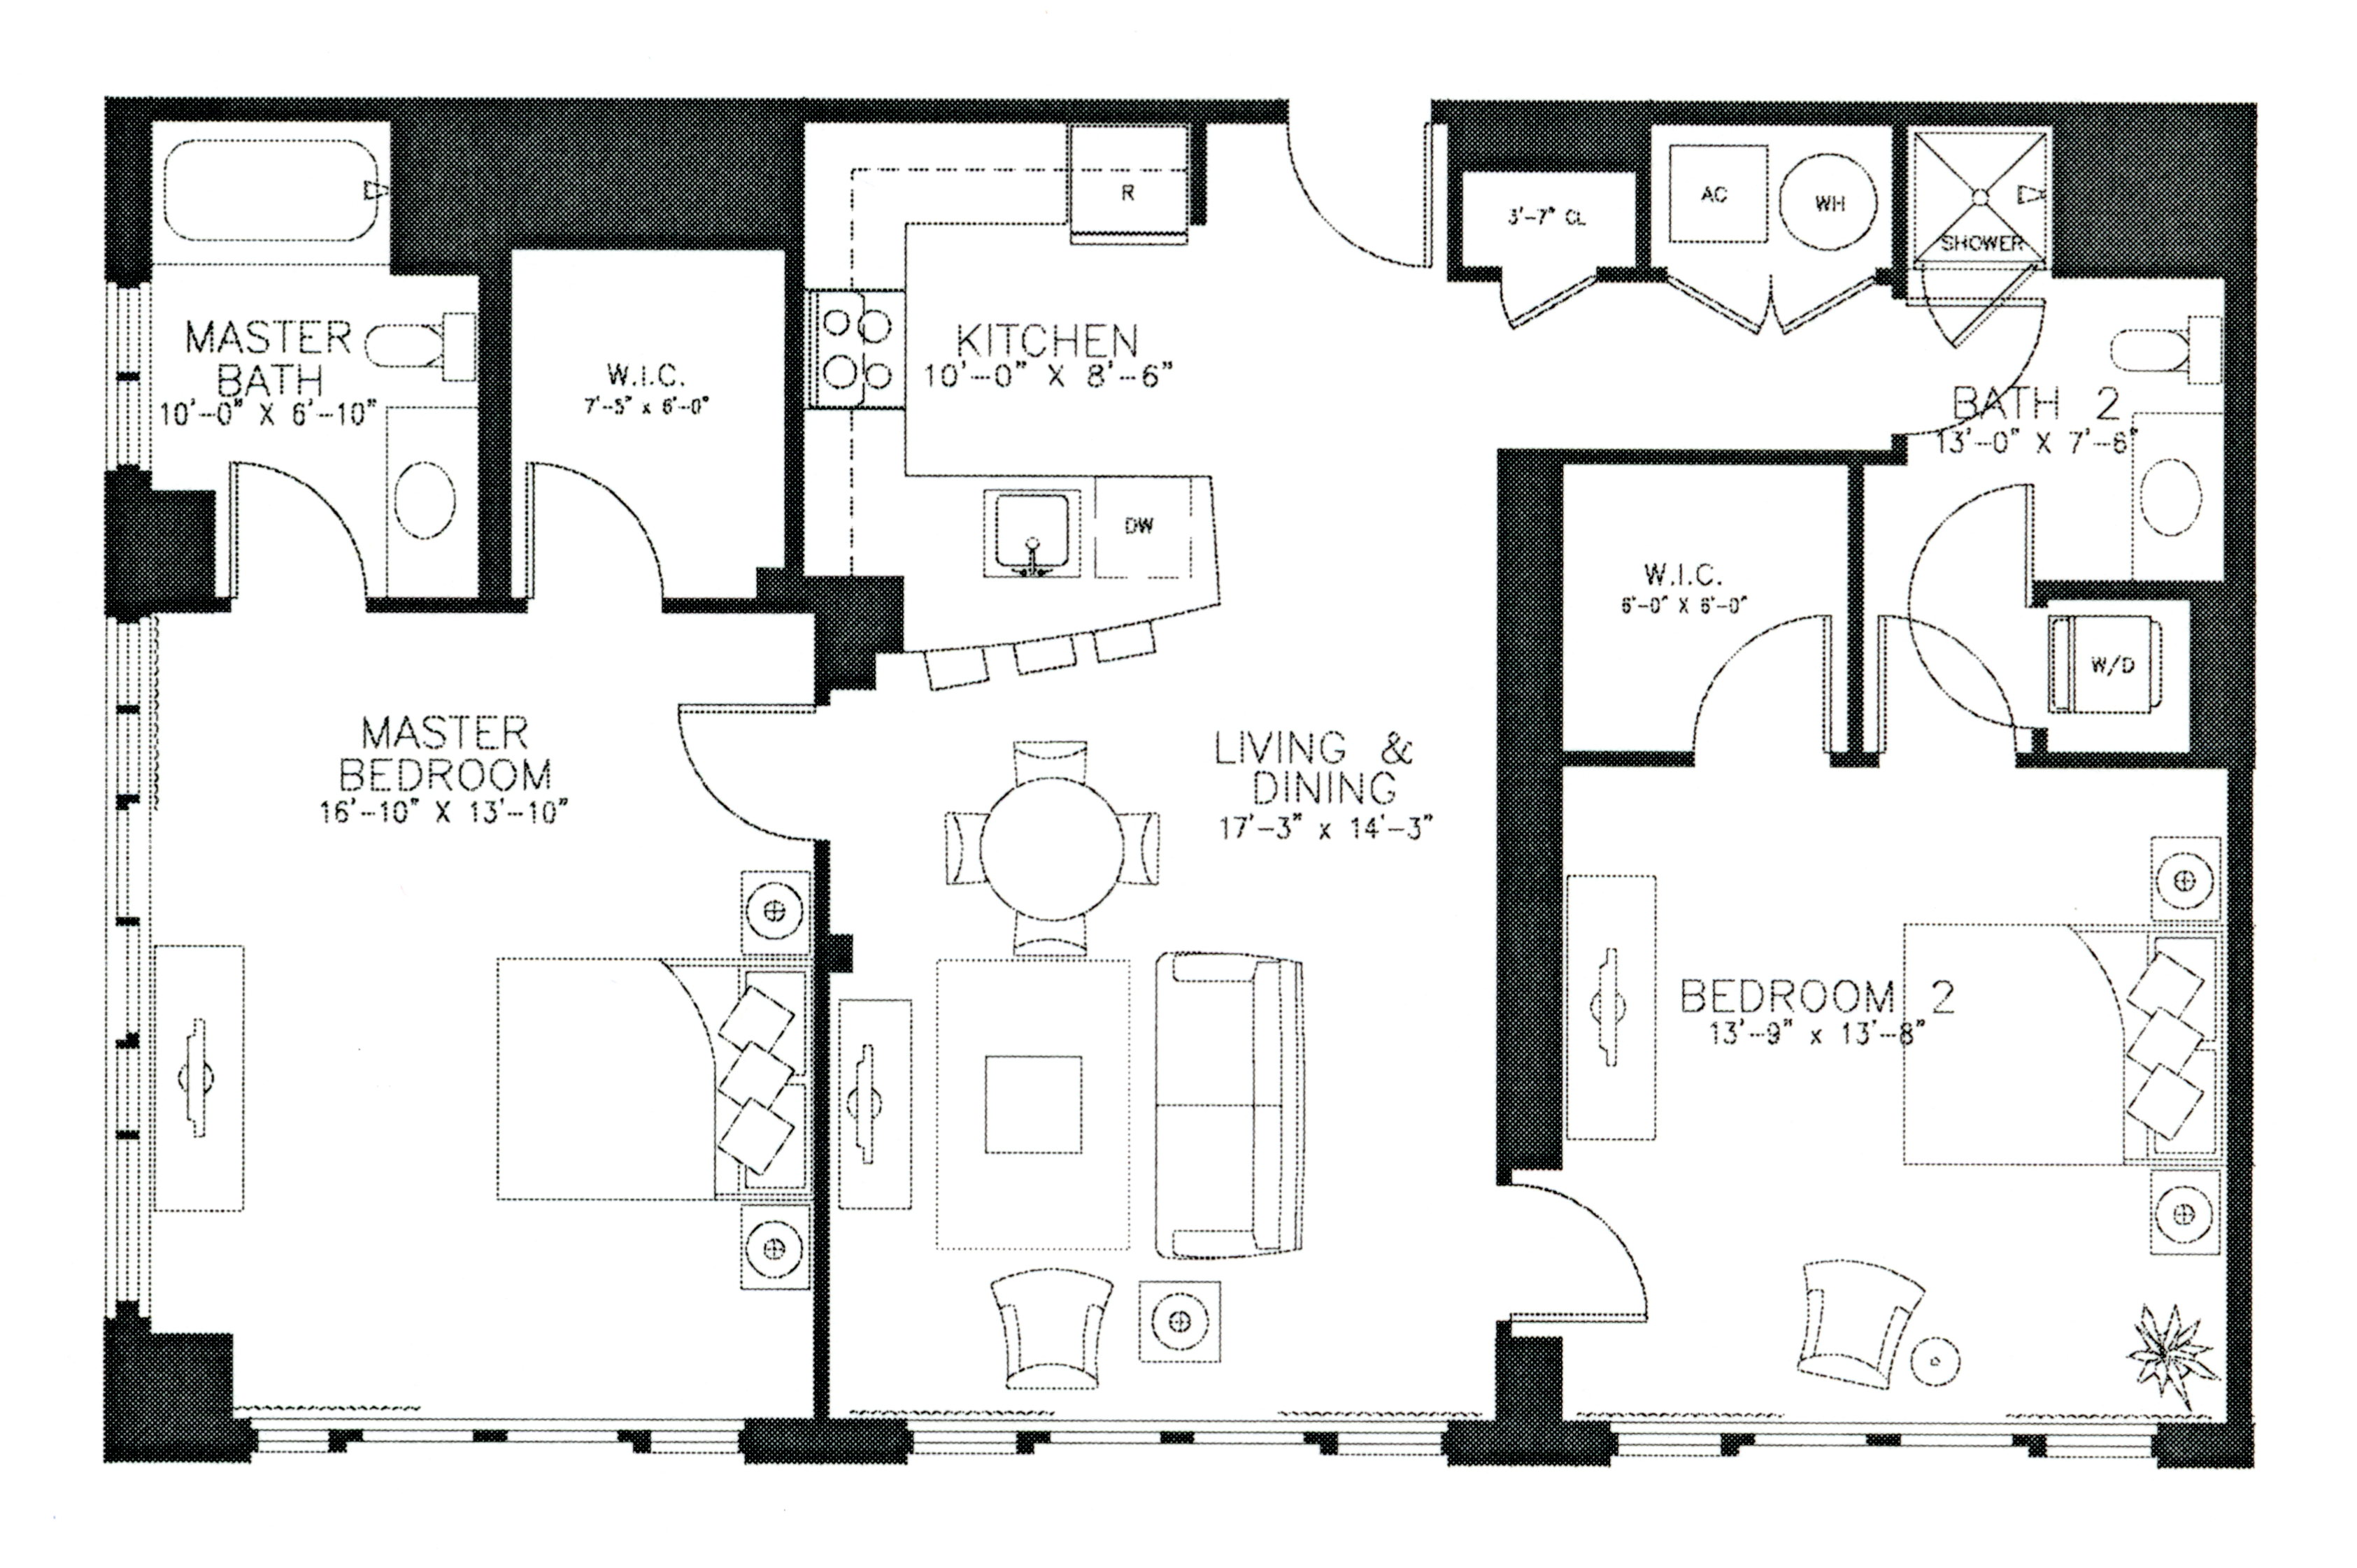 Gemresidences additionally Floor Plans moreover Michael Janzens Tiny House Floor Plans together with 2BCondo besides Harbour Plaza Condos. on 1 bedroom condo